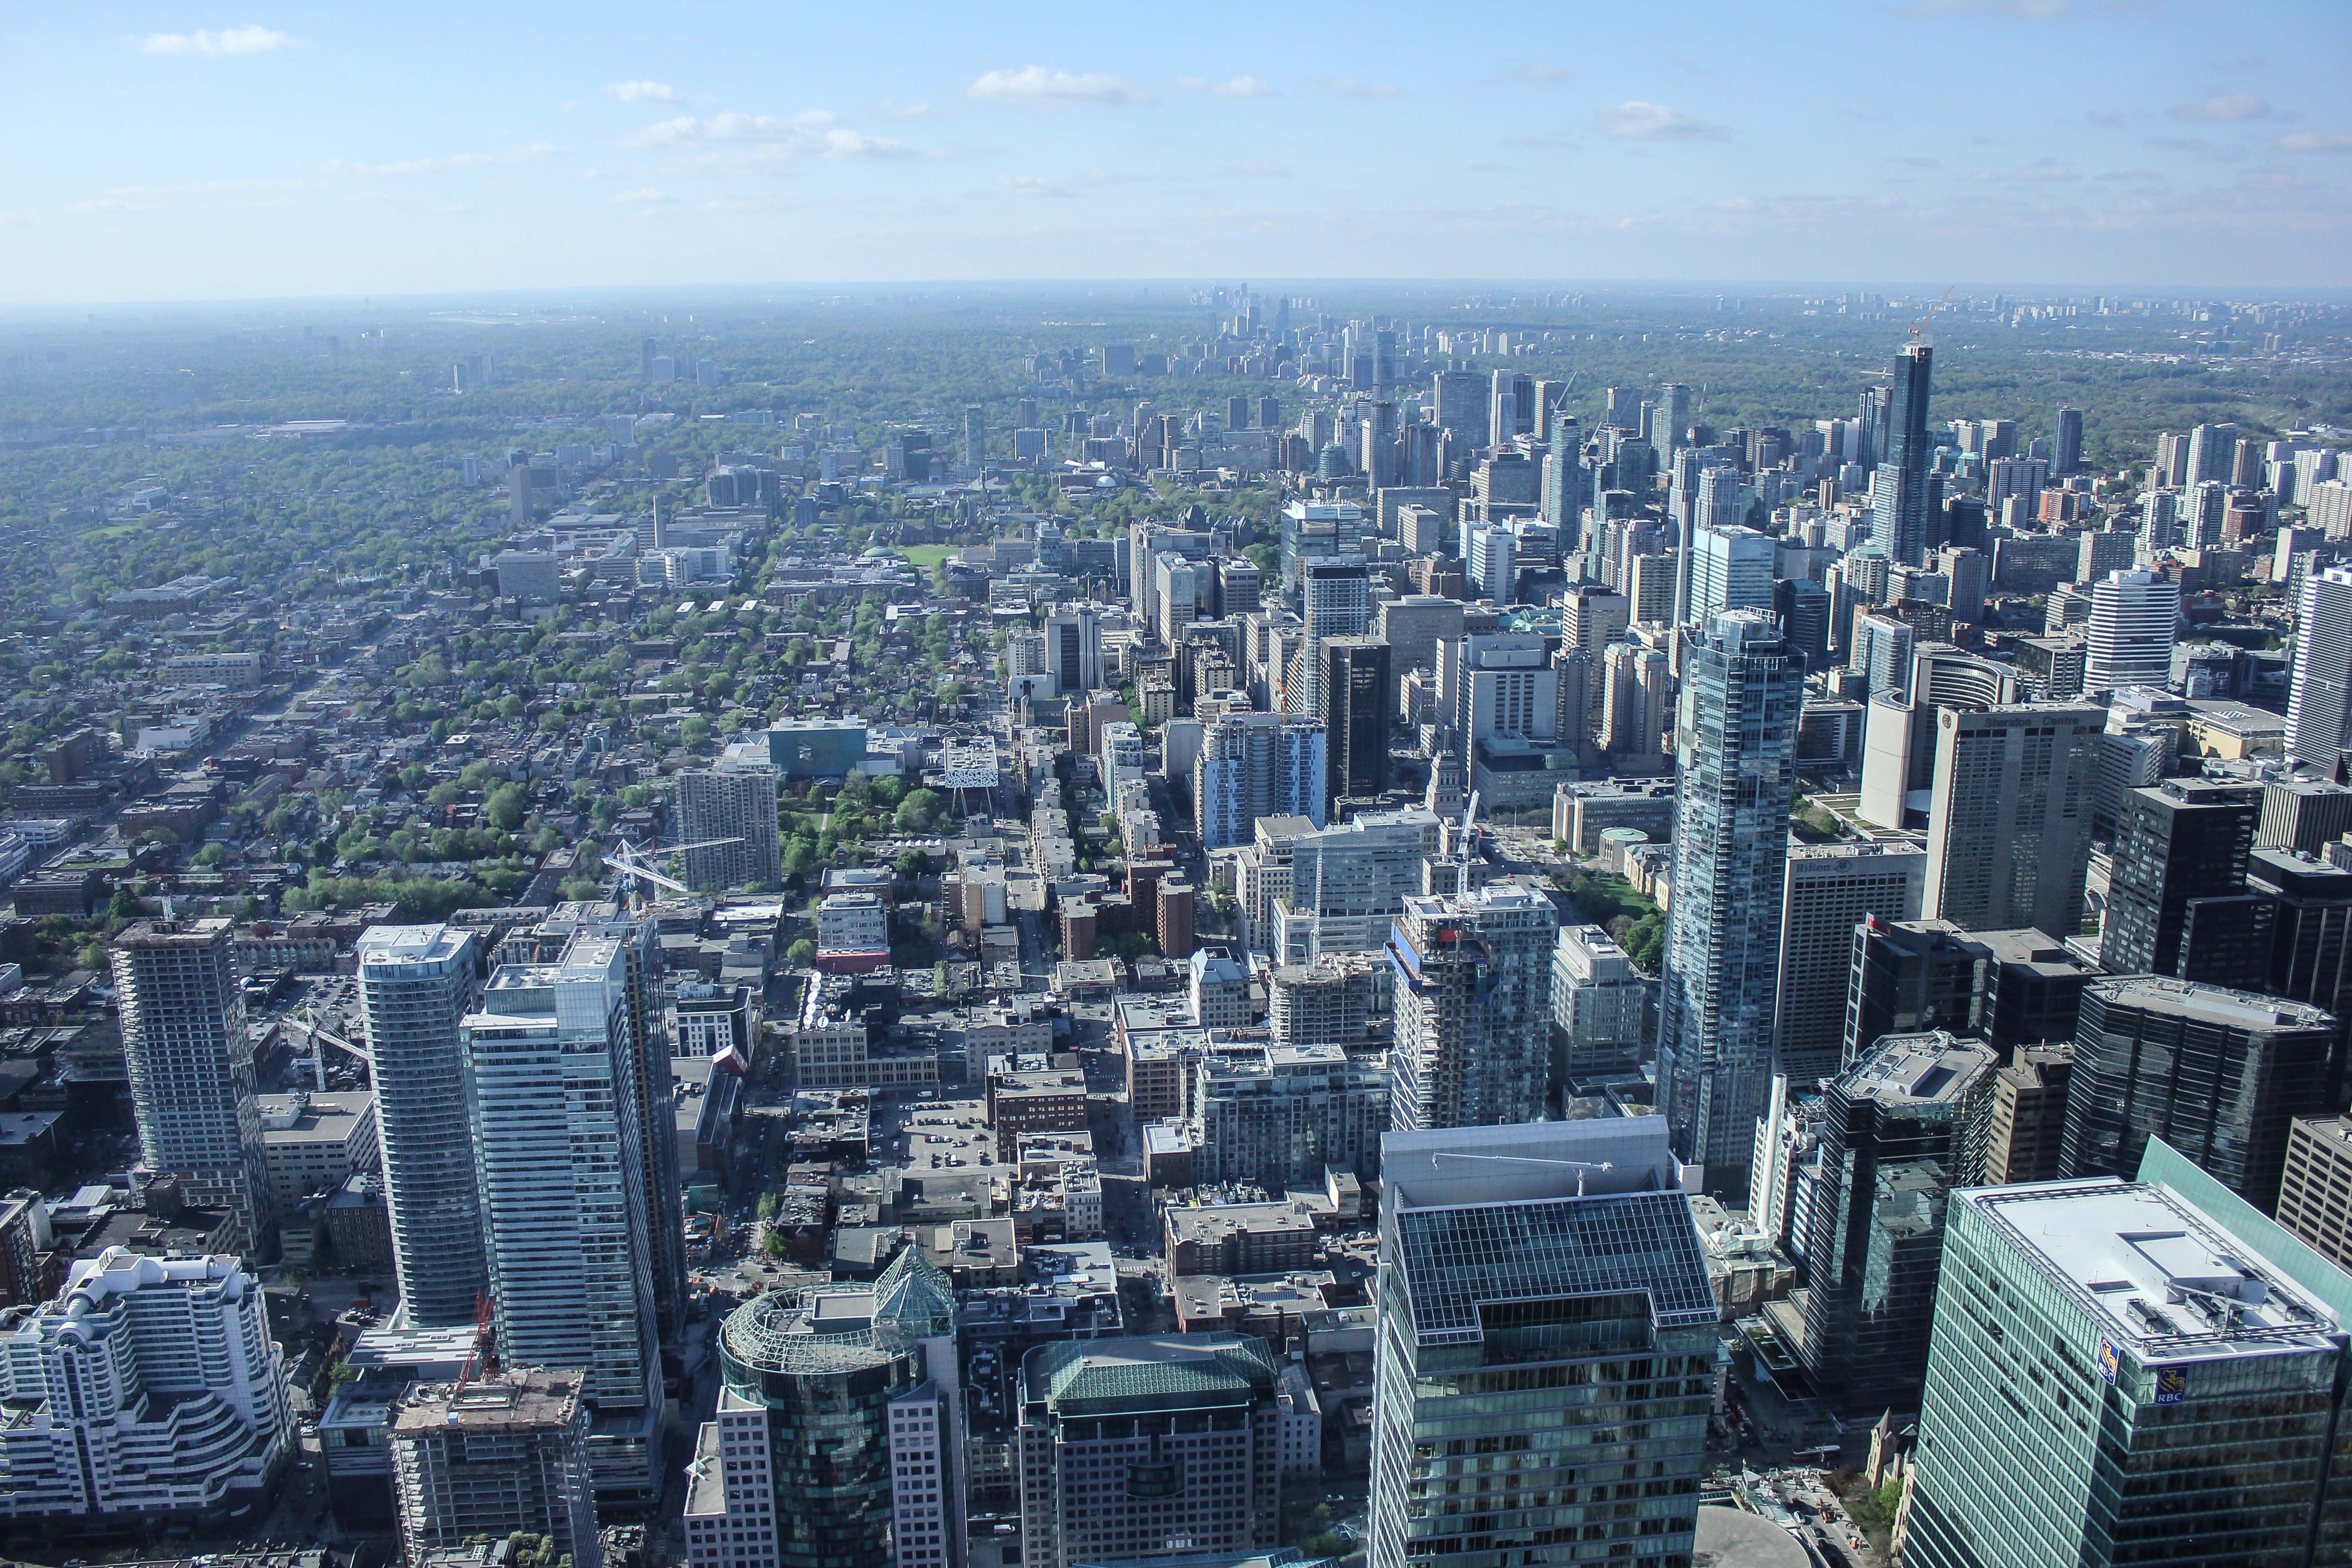 The skyline of Toronto seen from the observation deck of CN Tower